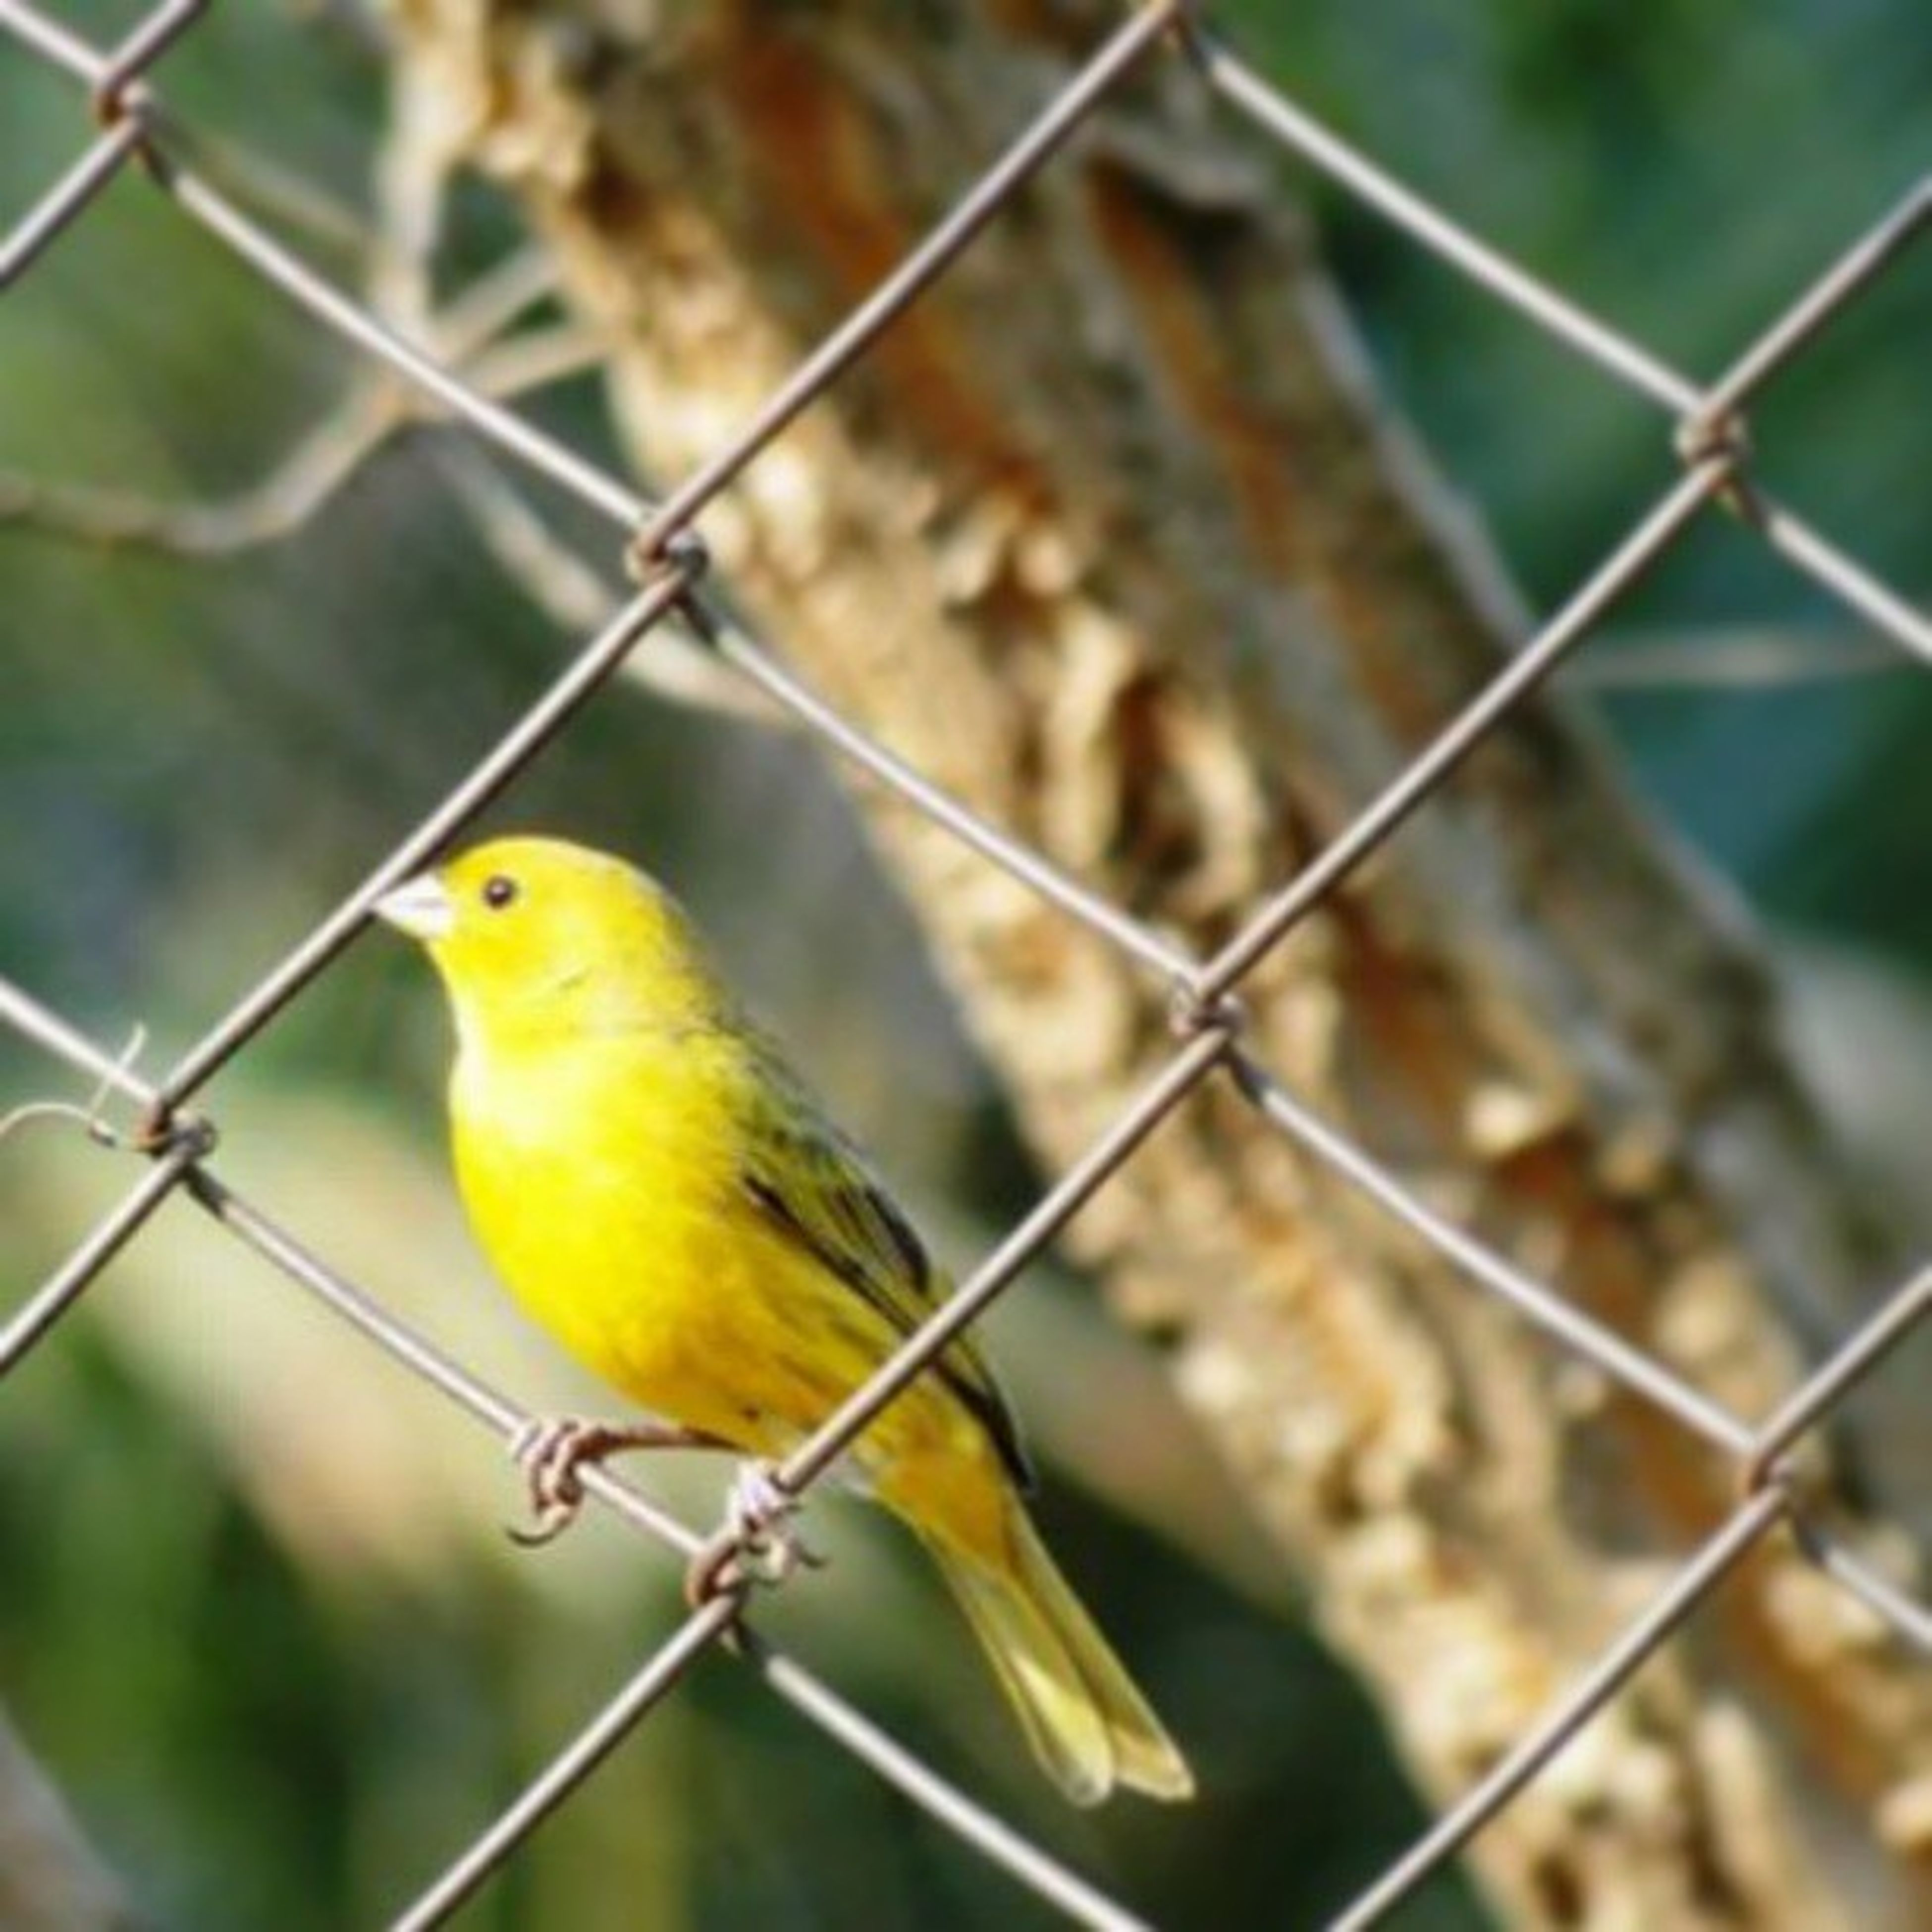 bird, animal themes, animals in the wild, perching, wildlife, one animal, focus on foreground, branch, parrot, beak, full length, close-up, fence, tree, day, yellow, nature, chainlink fence, outdoors, perched